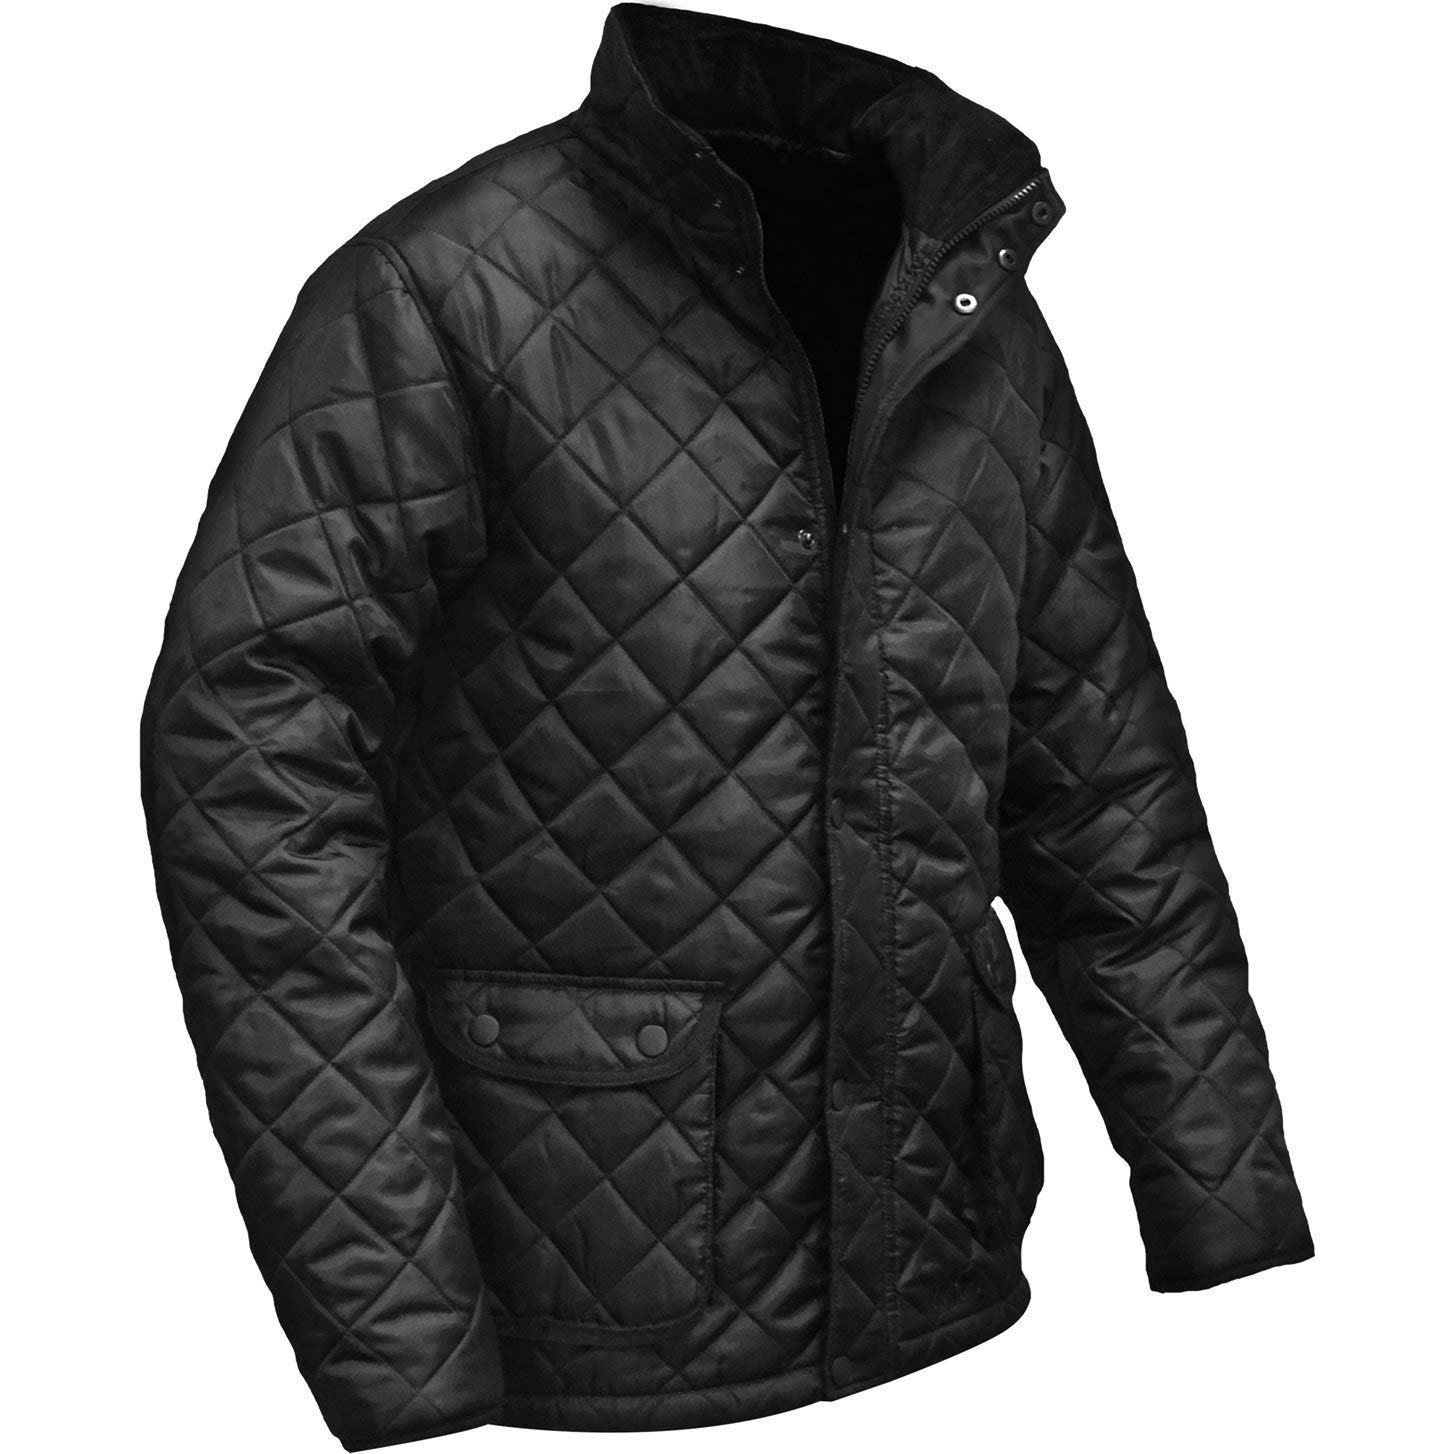 52f86af7228d Roughneck Clothing QUILTXL X-Large Quilted Jacket - Black: Amazon.co.uk:  DIY & Tools